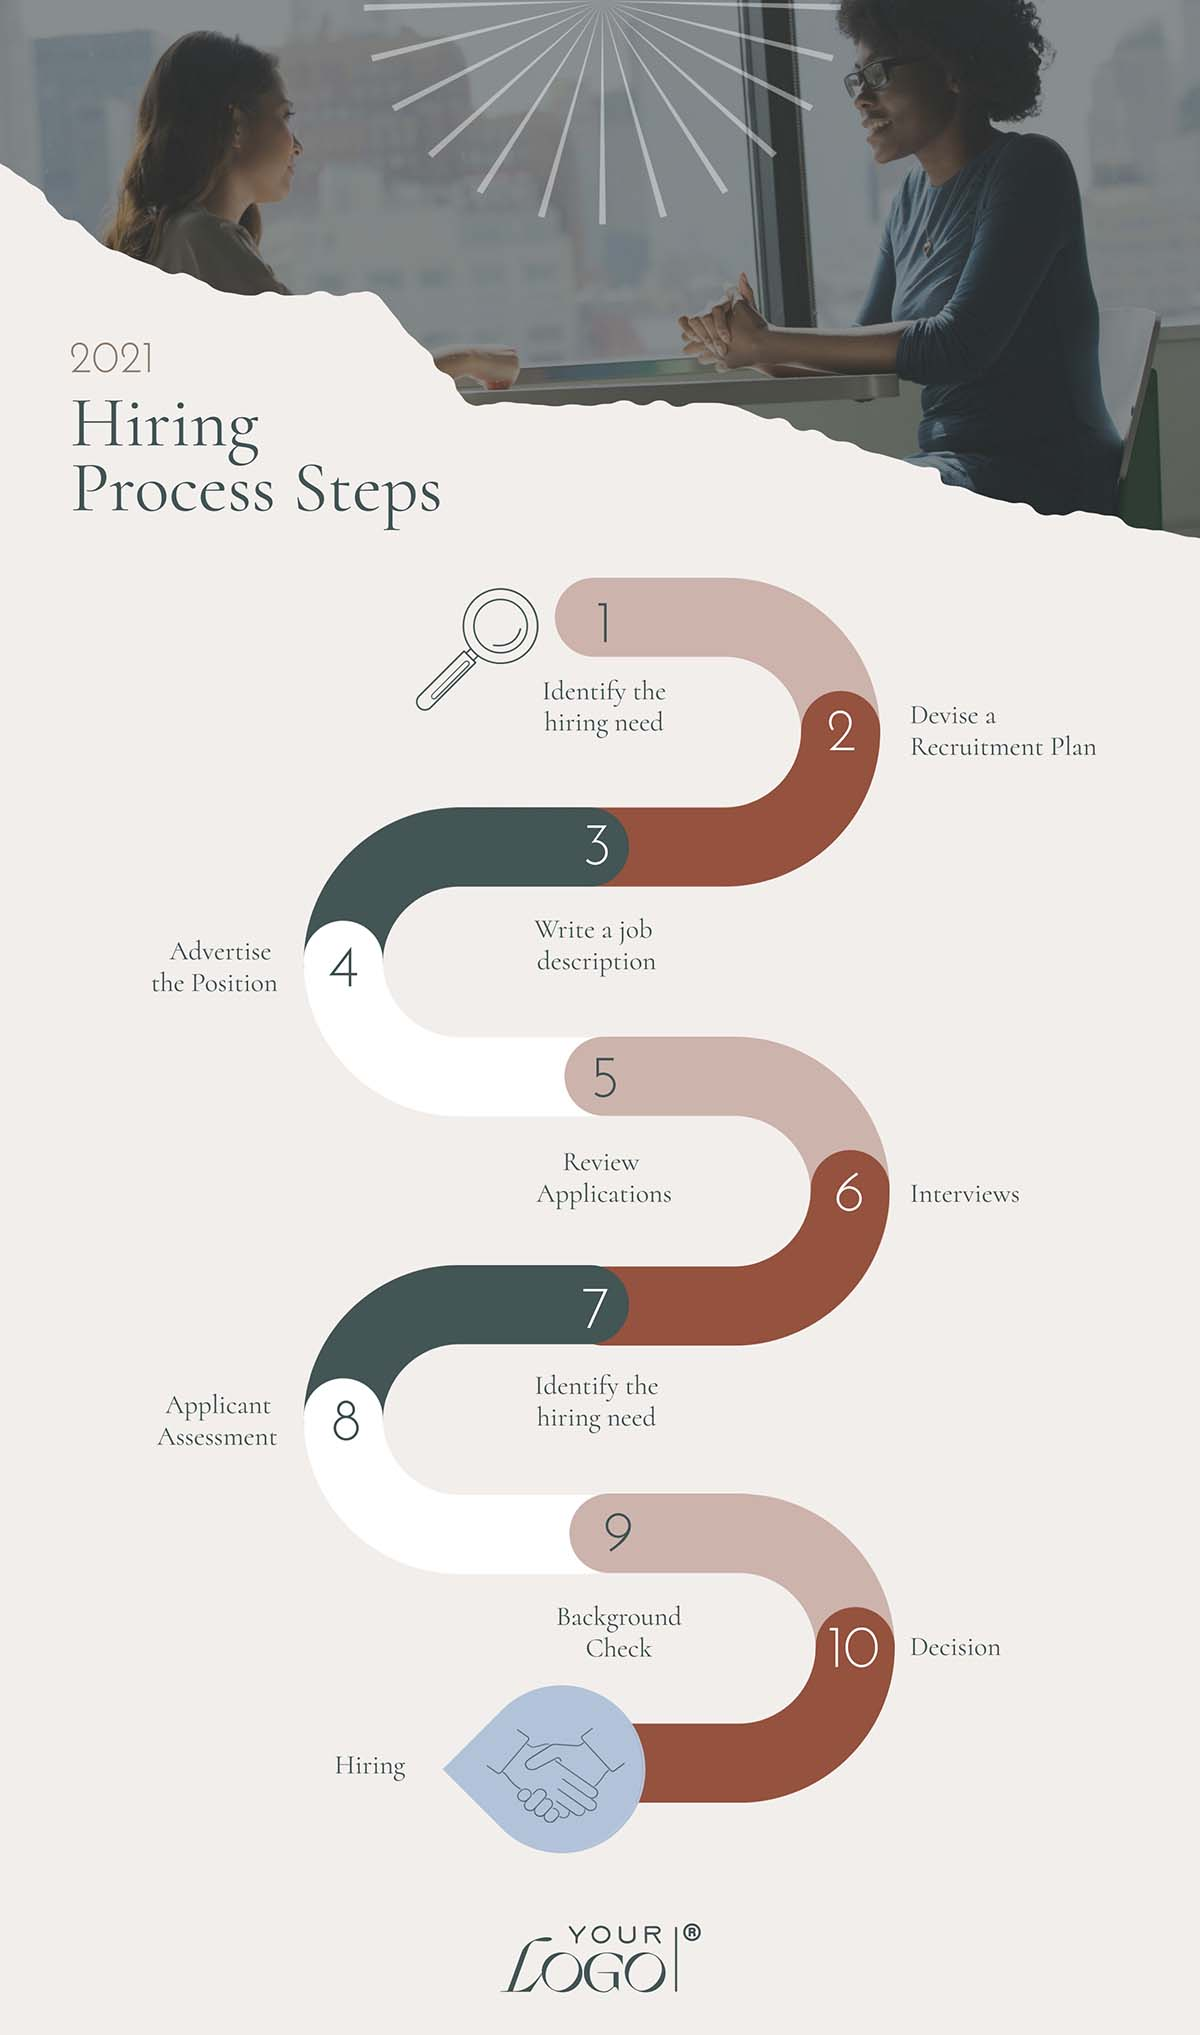 A hiring process infographic template available to customize in Visme.